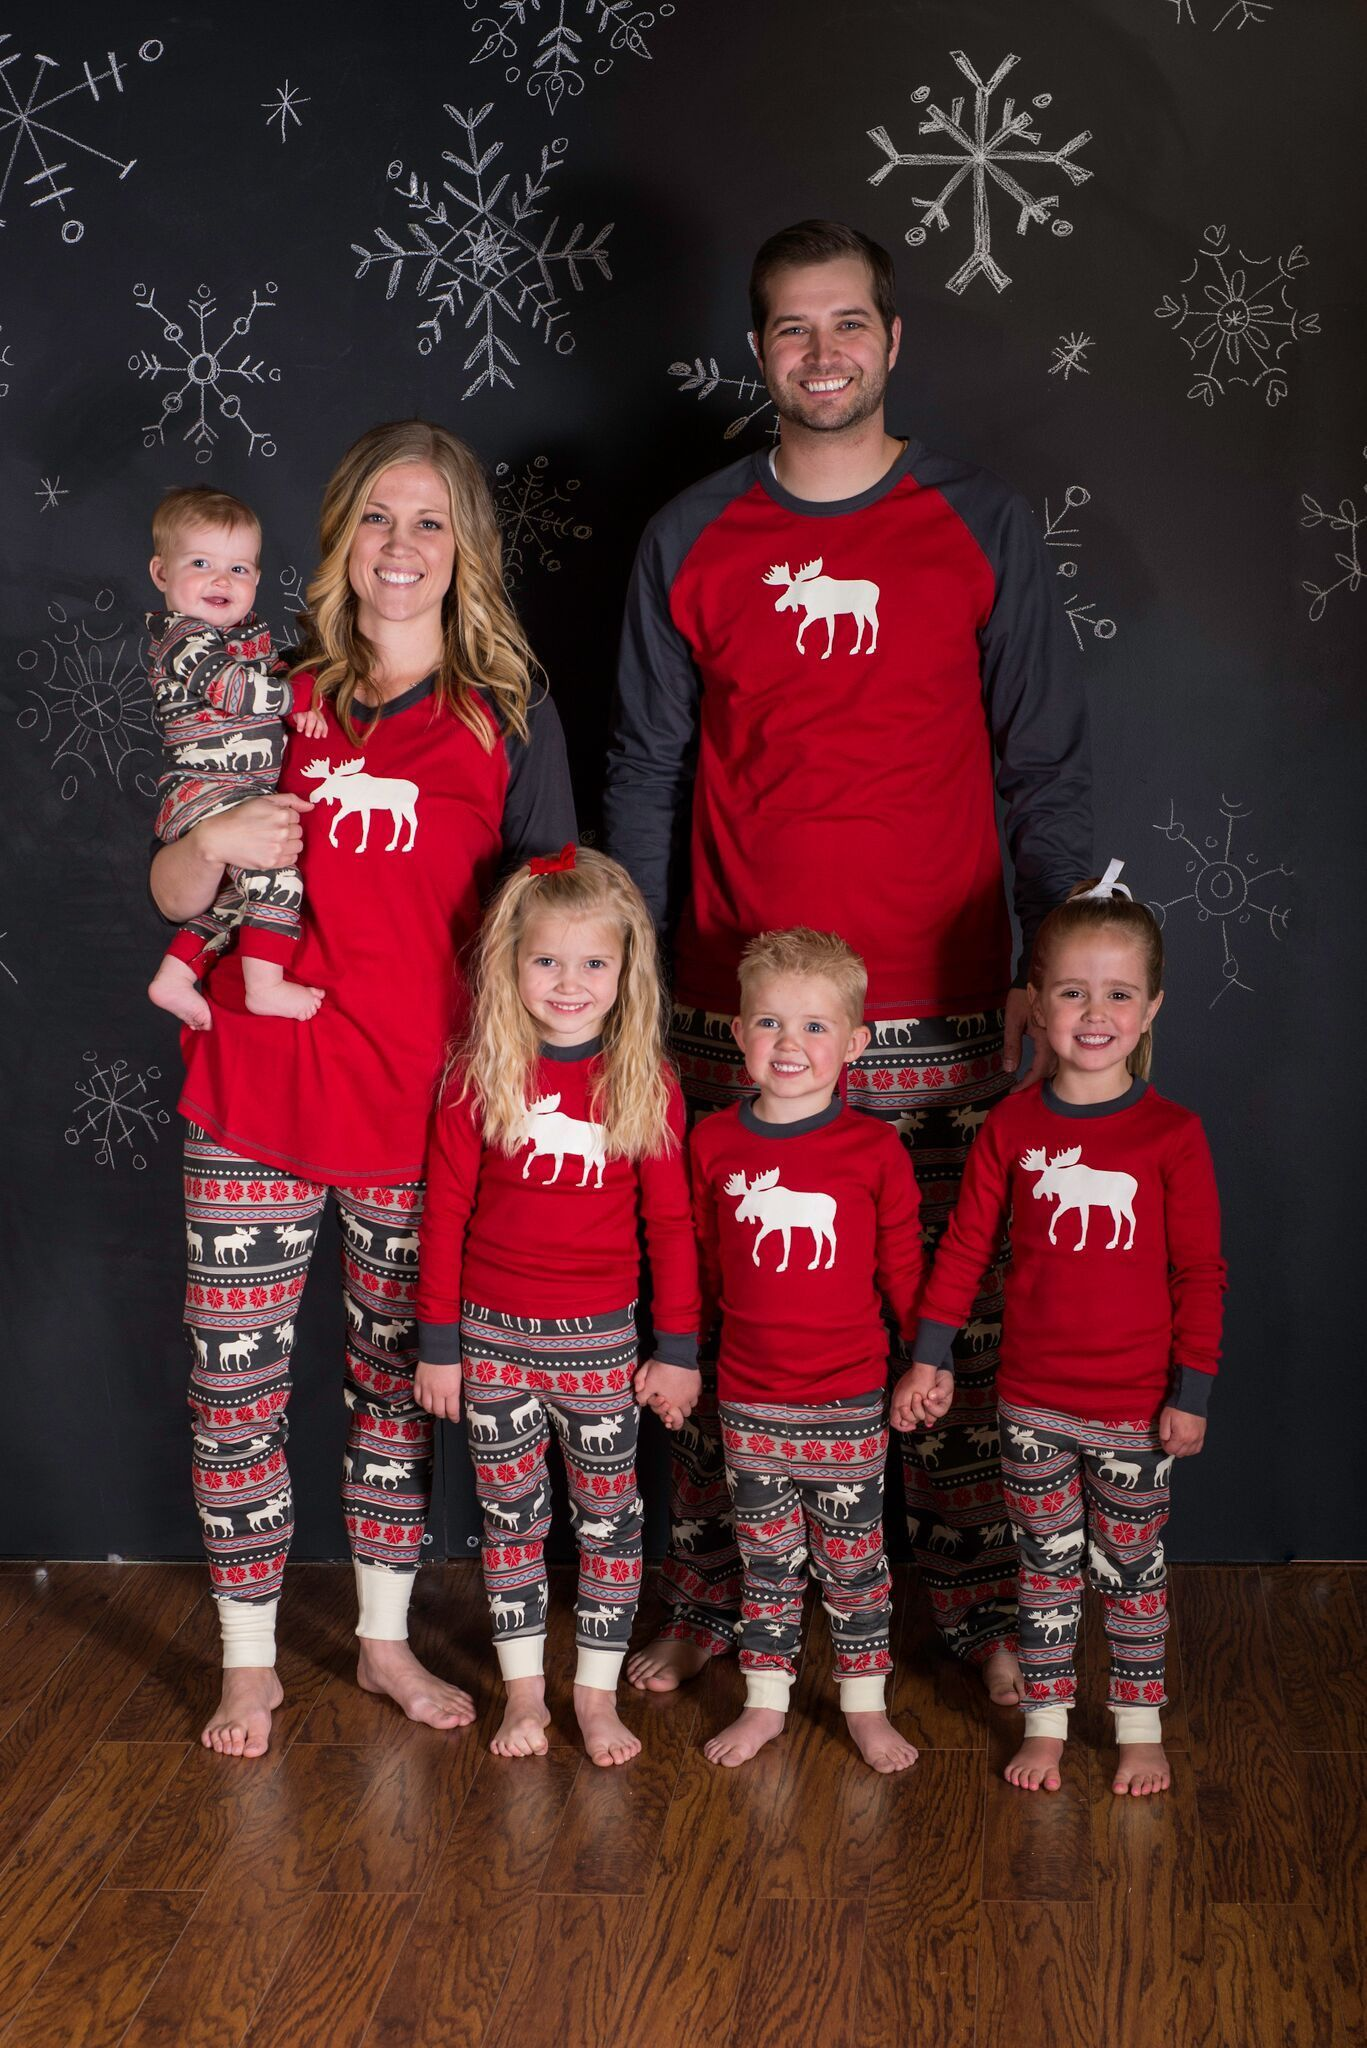 Moose Fair PJ s for the whole Family!  3.39 - 2017 Family Matching  Christmas Pajamas Set Women Kids Deer Sleepwear ... 53ef49443